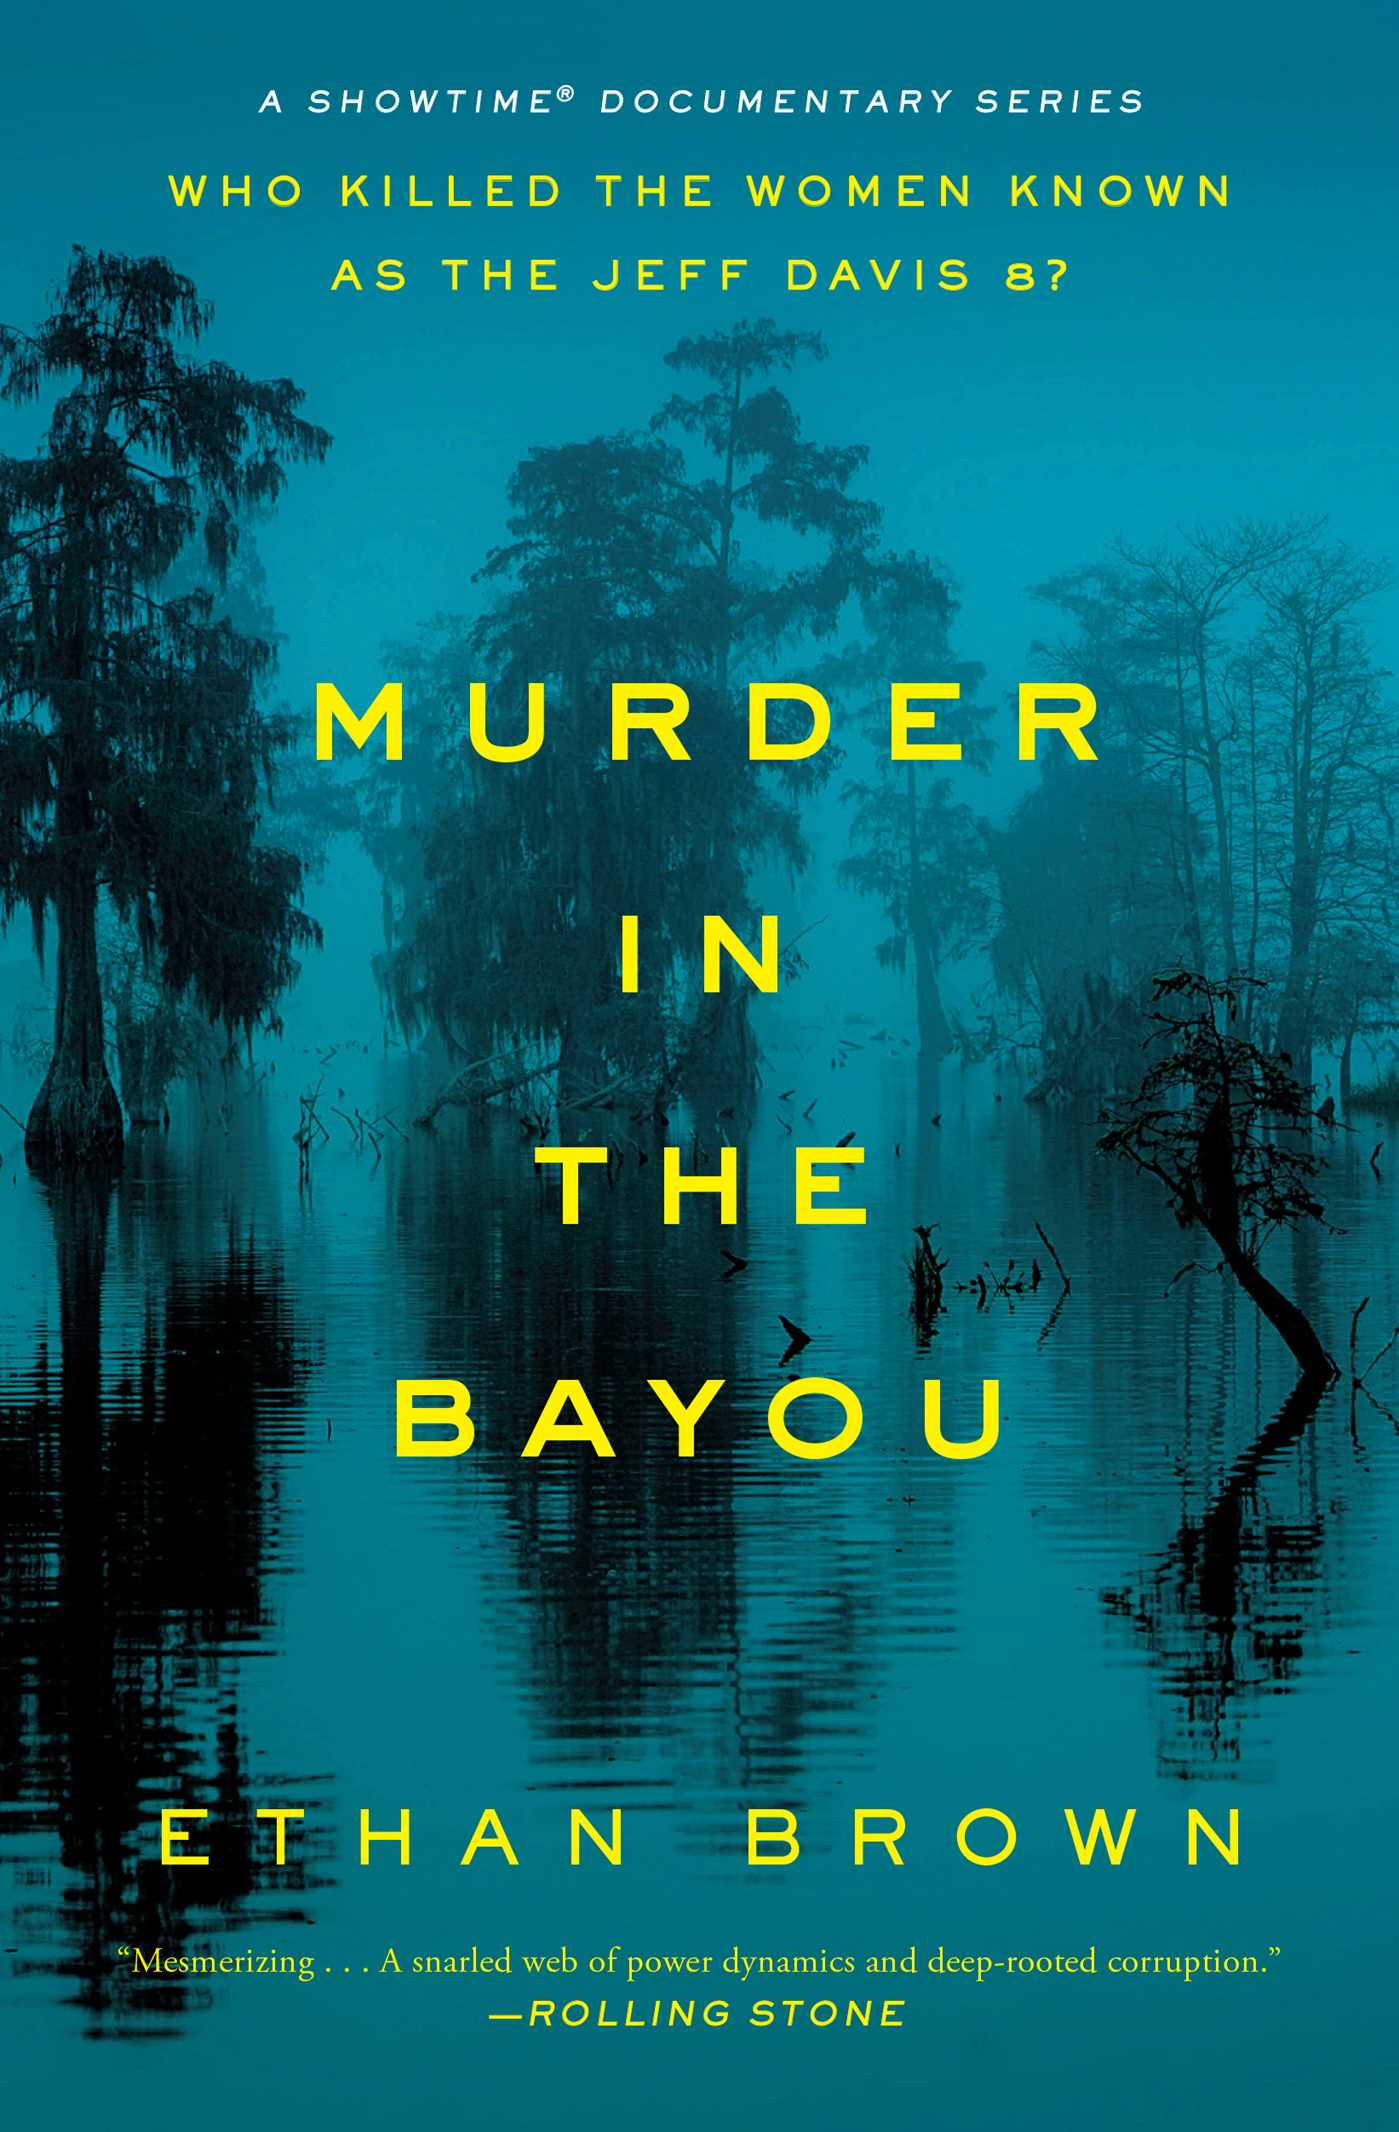 Murder in the bayou 9781476793269 hr